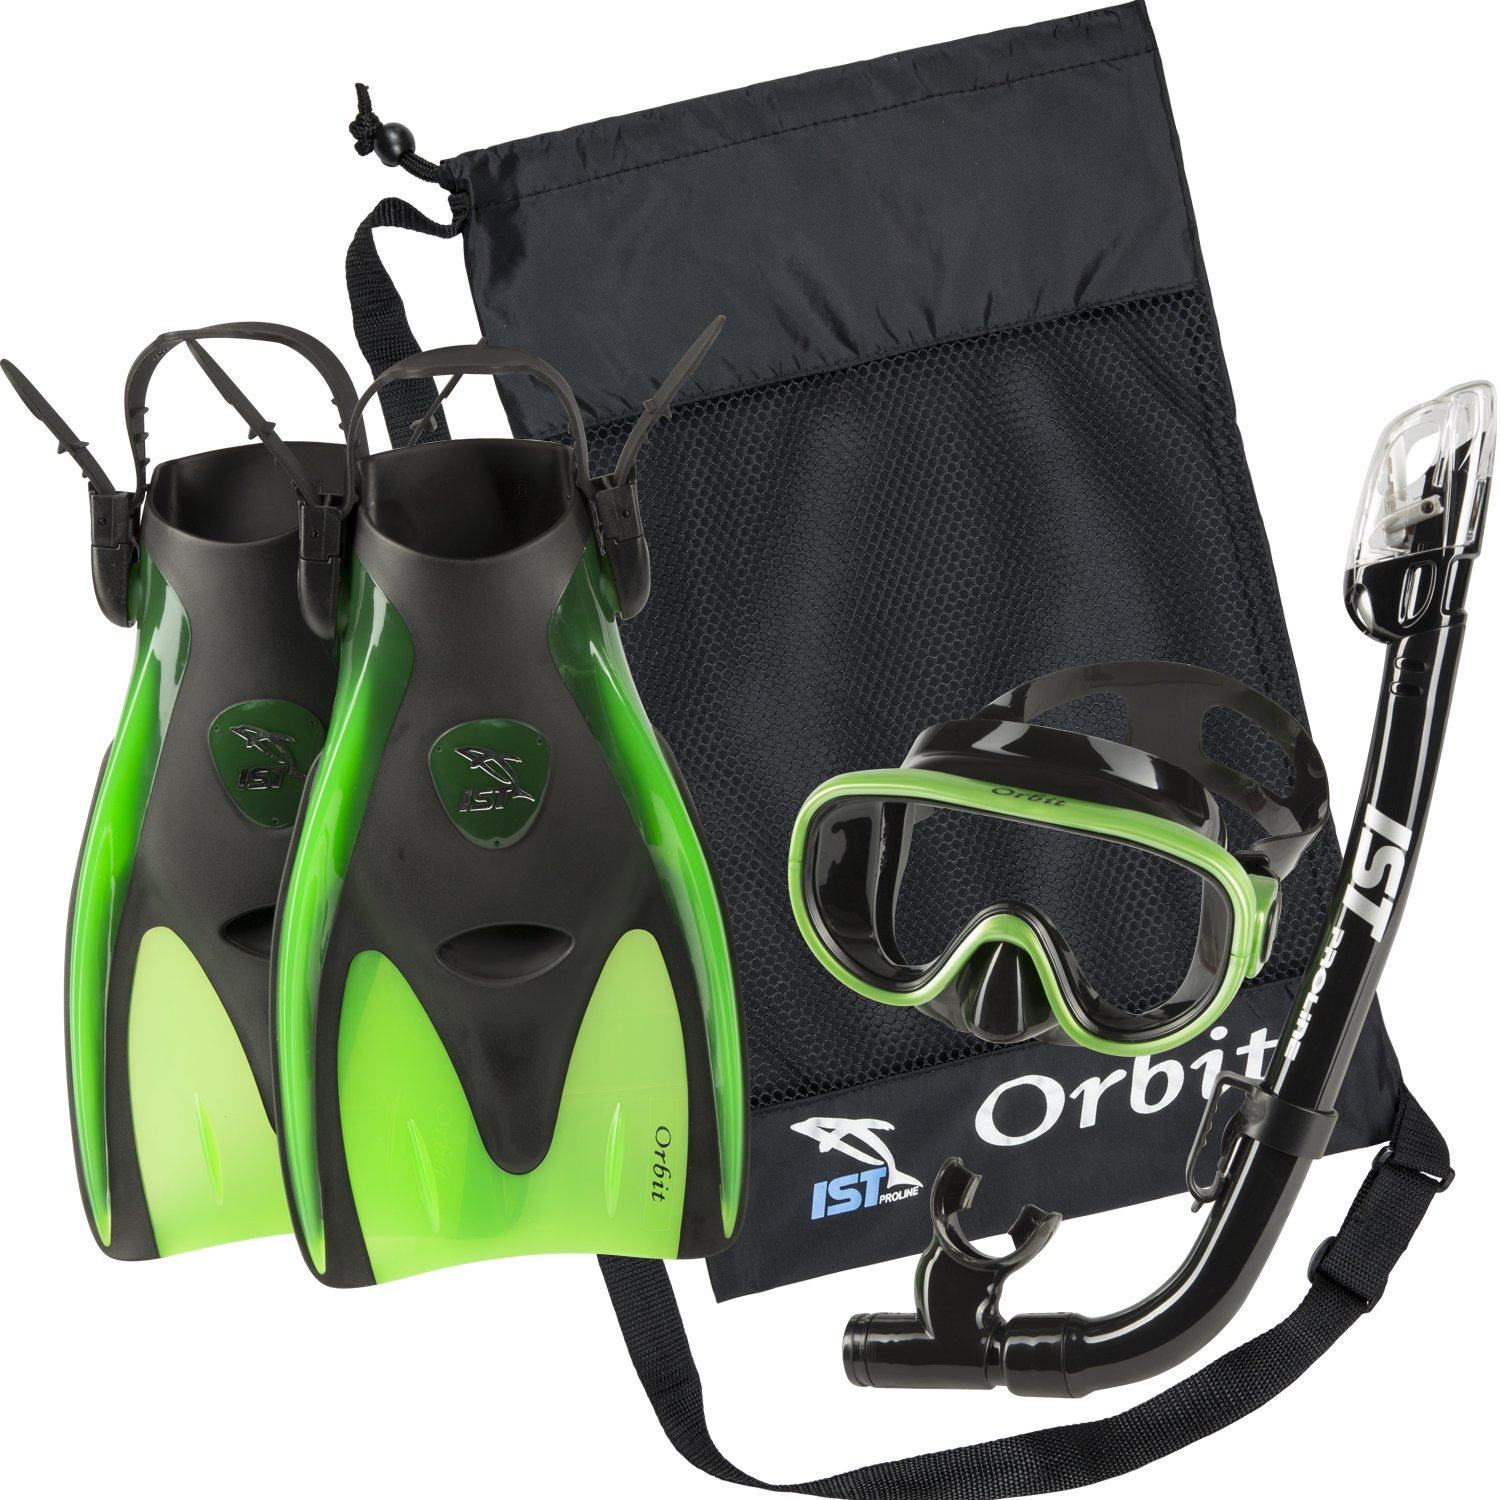 IST Orbit Snorkeling Gear Set: Tempered Glass Mask, Dry Top Snorkel & Trek Fins for Compact Travel (Black Silicone/Green, Small)